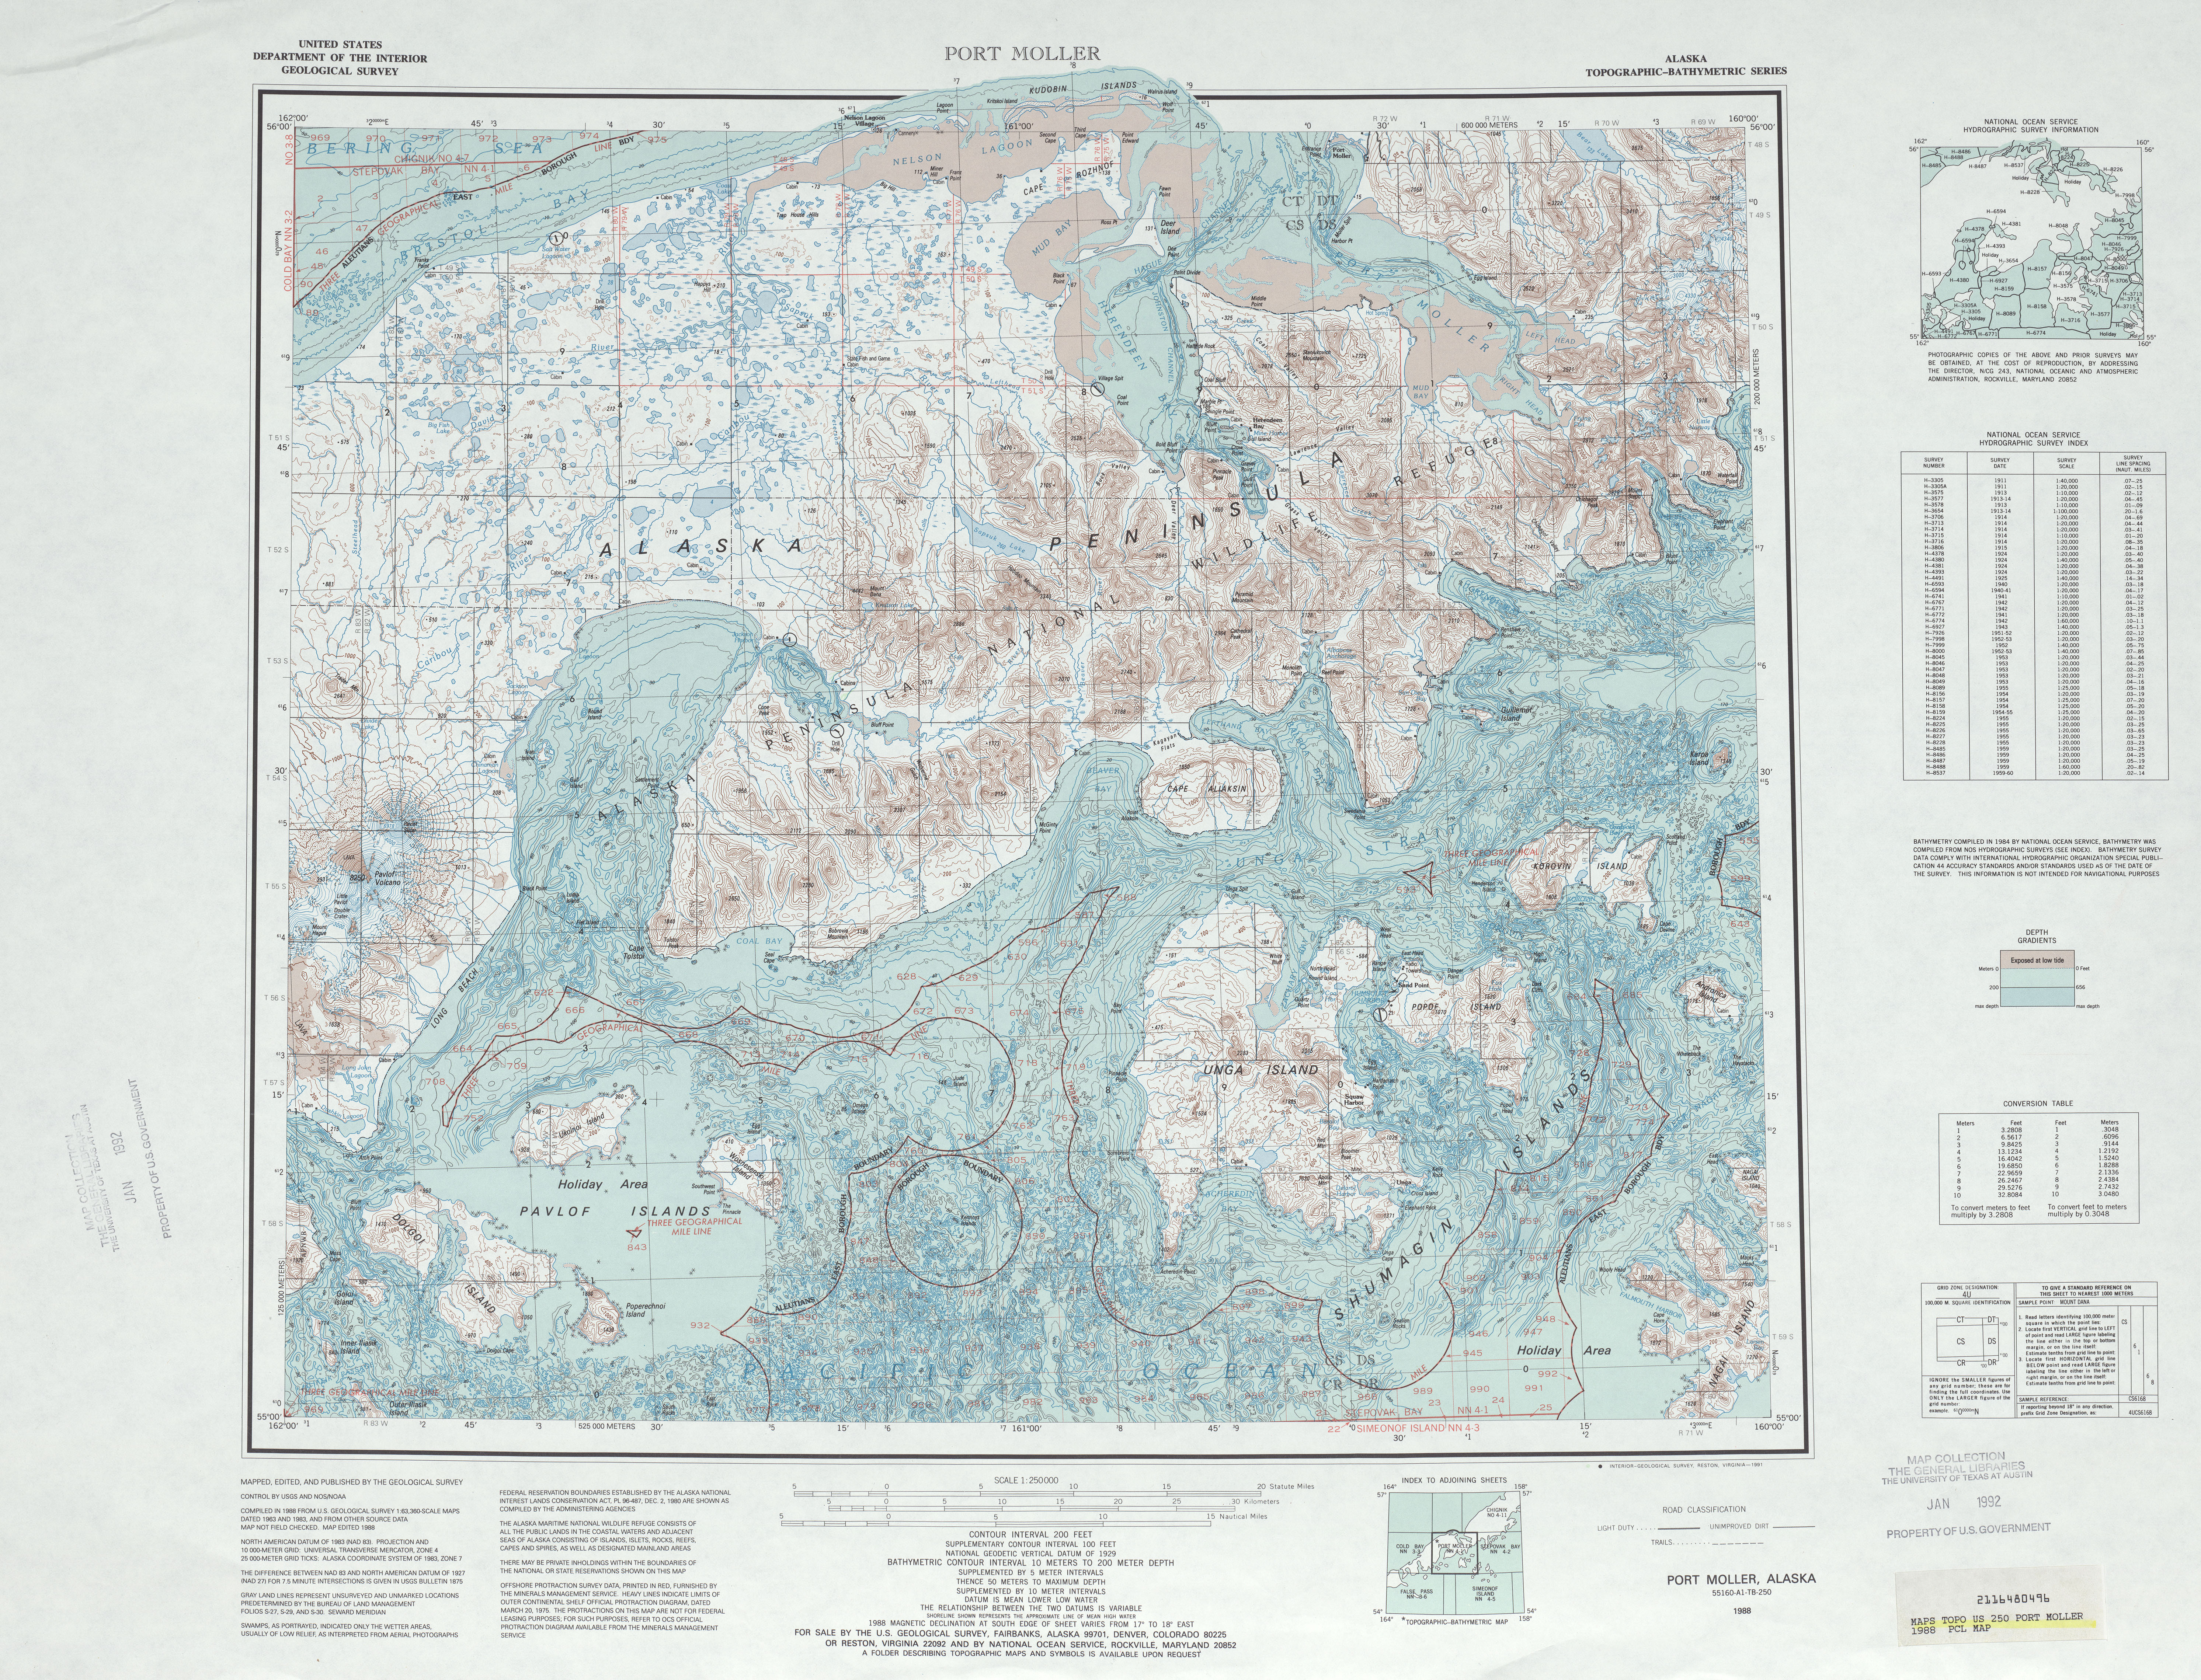 Port Moller Topographic Map Sheet, United States 1988